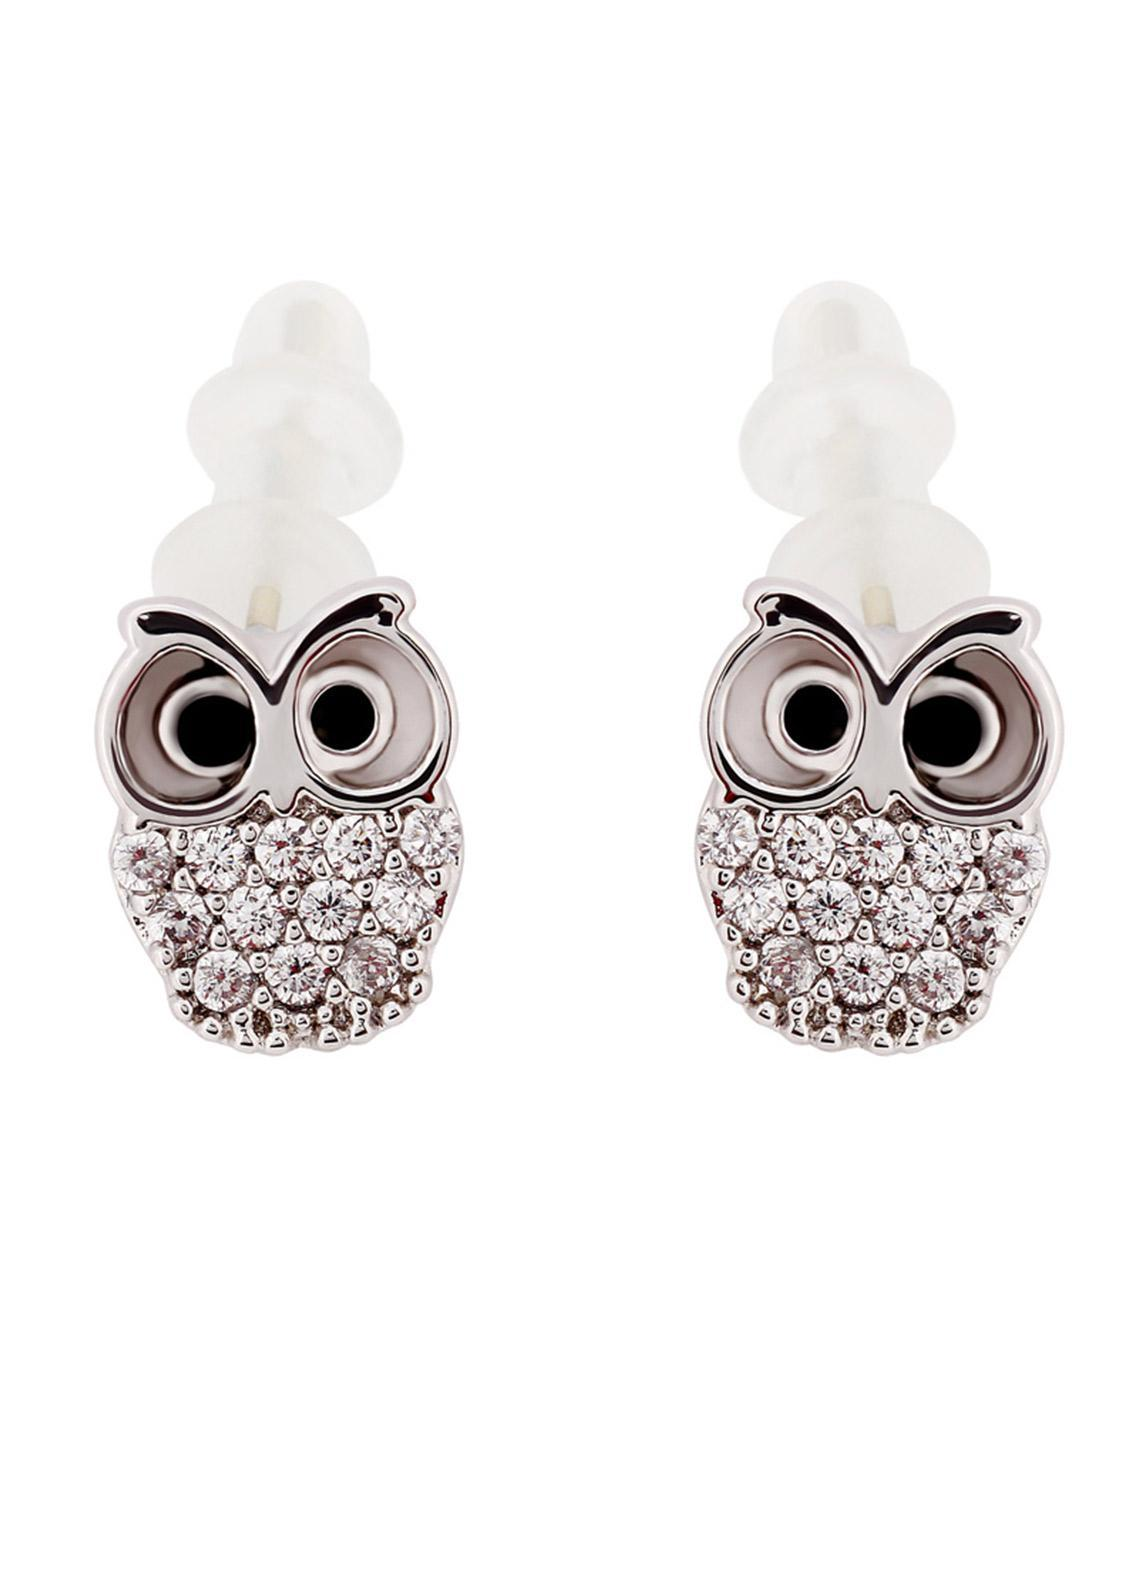 Anna Grace London by Silk Avenue Silver Crystal Sparkling Owl Earring AGE0021 - Ladies Jewellery